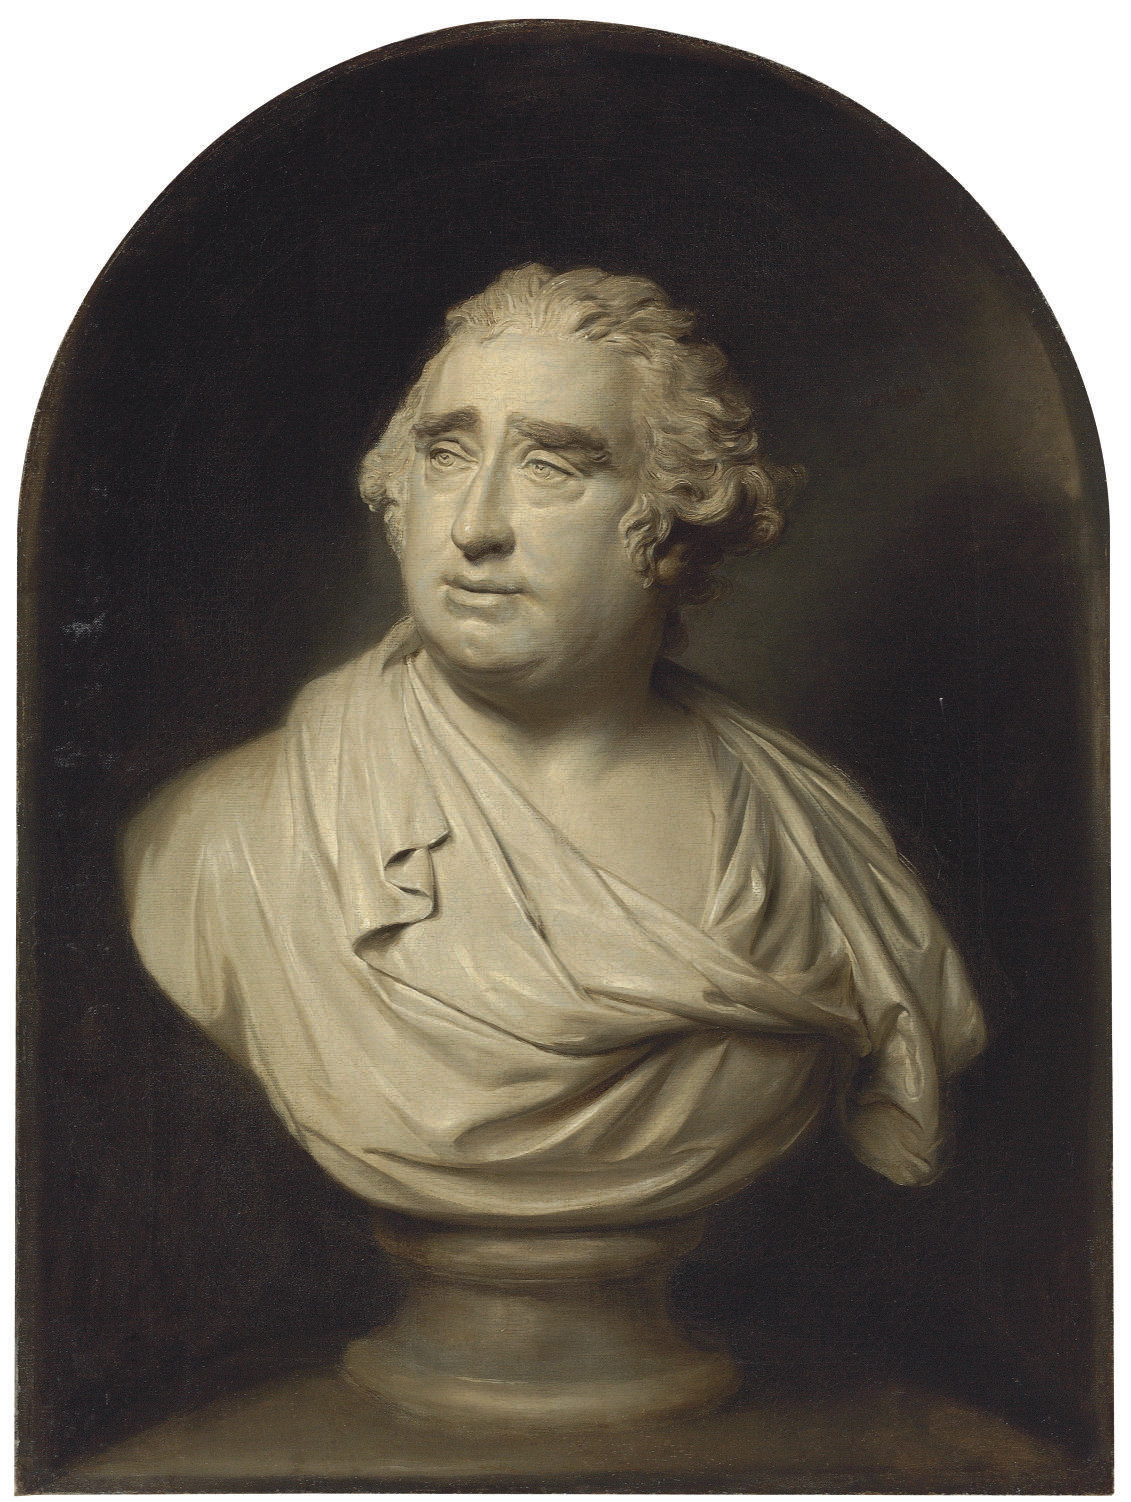 A trompe l'oeil grisaille of Nollekens's bust of Charles James Fox (1749-1806), in a niche